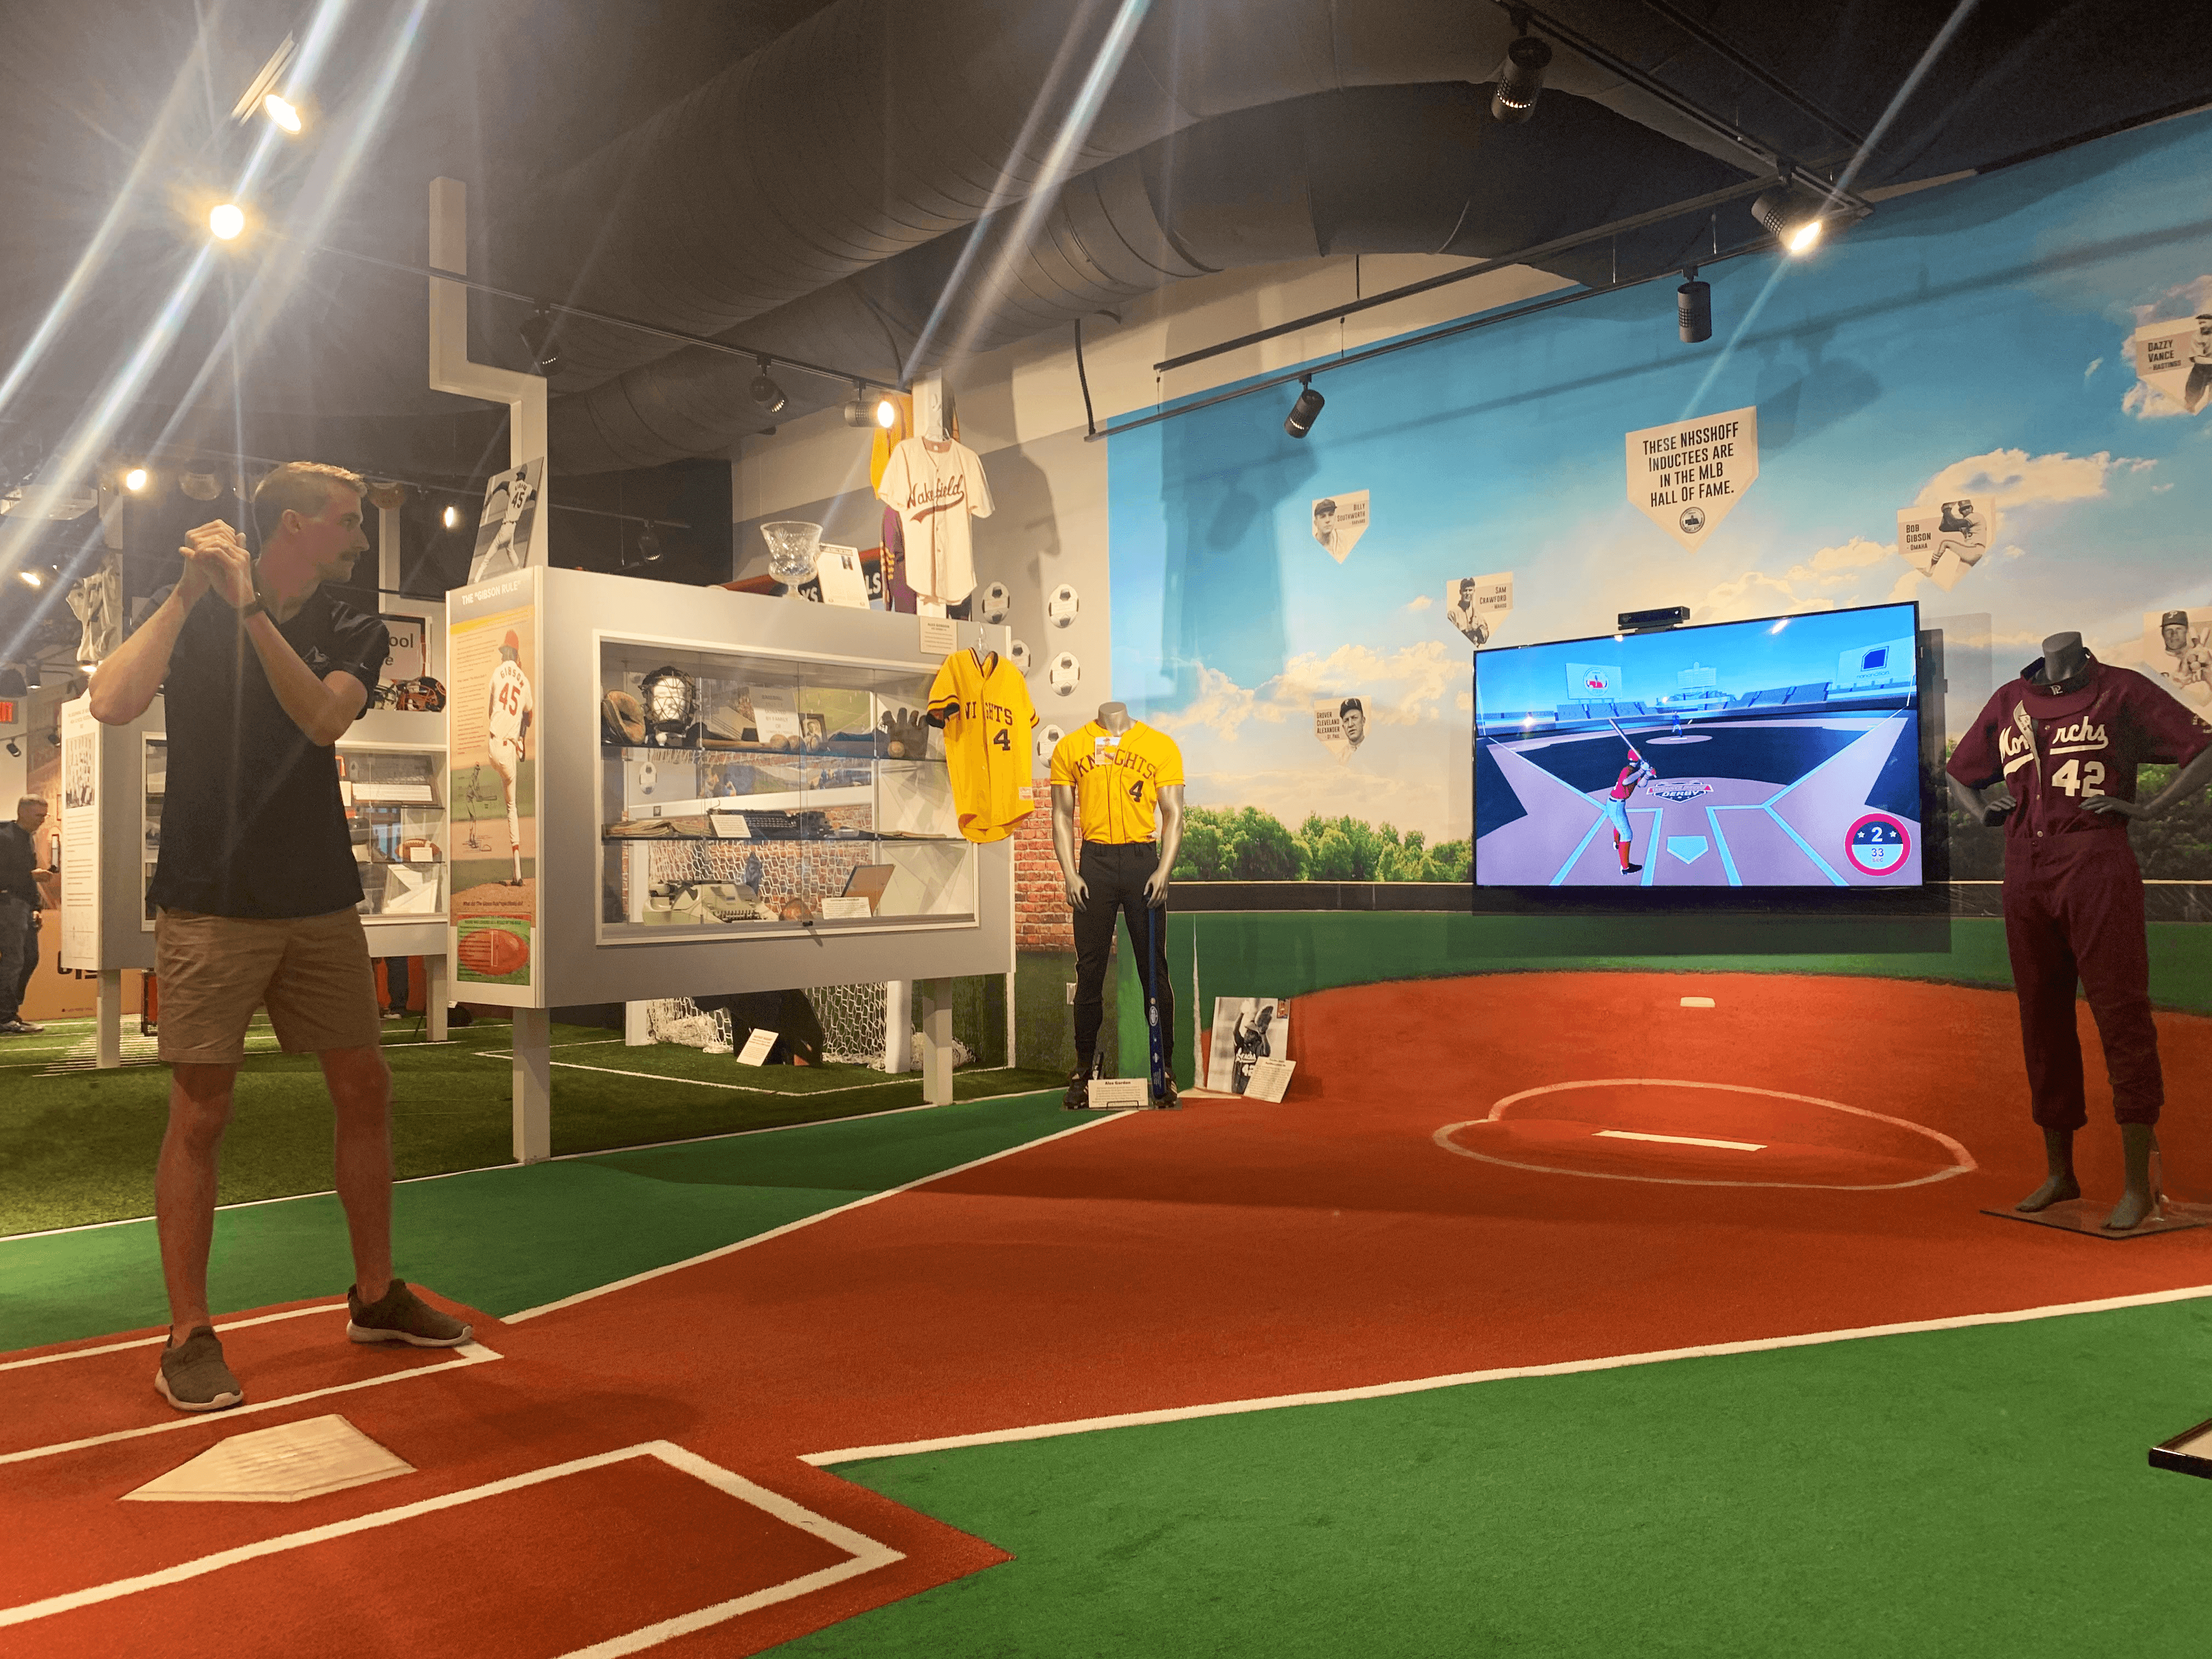 Man standing at home plate playing the gesture-based baseball game at the Nebraska High School Sports Hall of Fame..